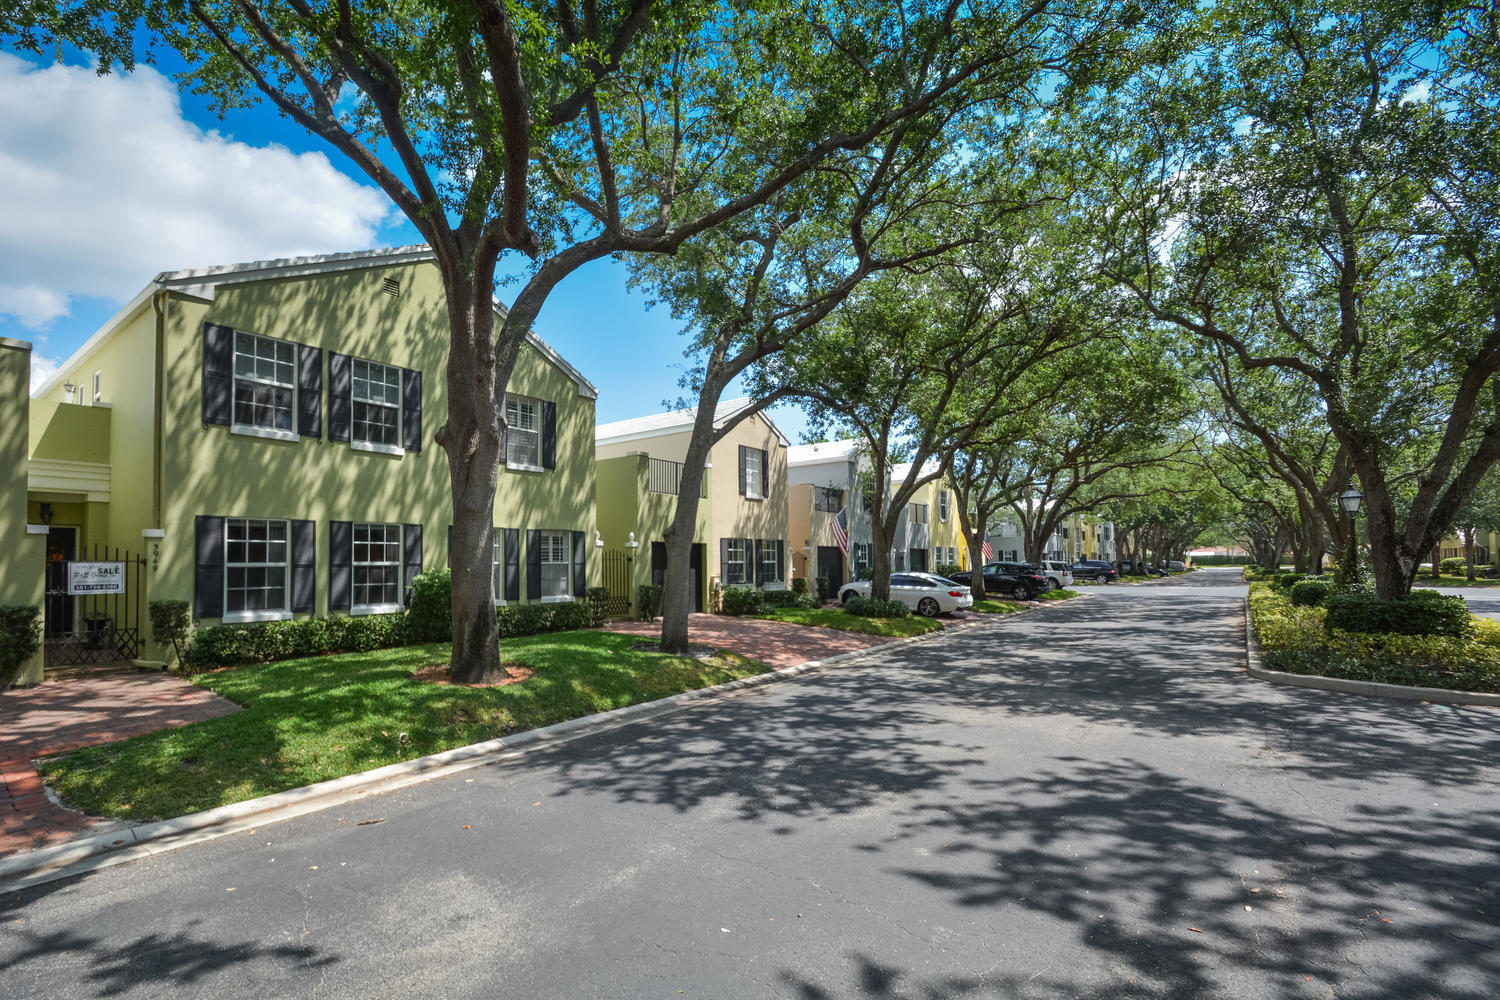 5949 Catesby Street, Boca Raton, Florida 33433, 3 Bedrooms Bedrooms, ,3 BathroomsBathrooms,Townhouse,For Sale,CHARLESTON PLACE,Catesby,RX-10437358